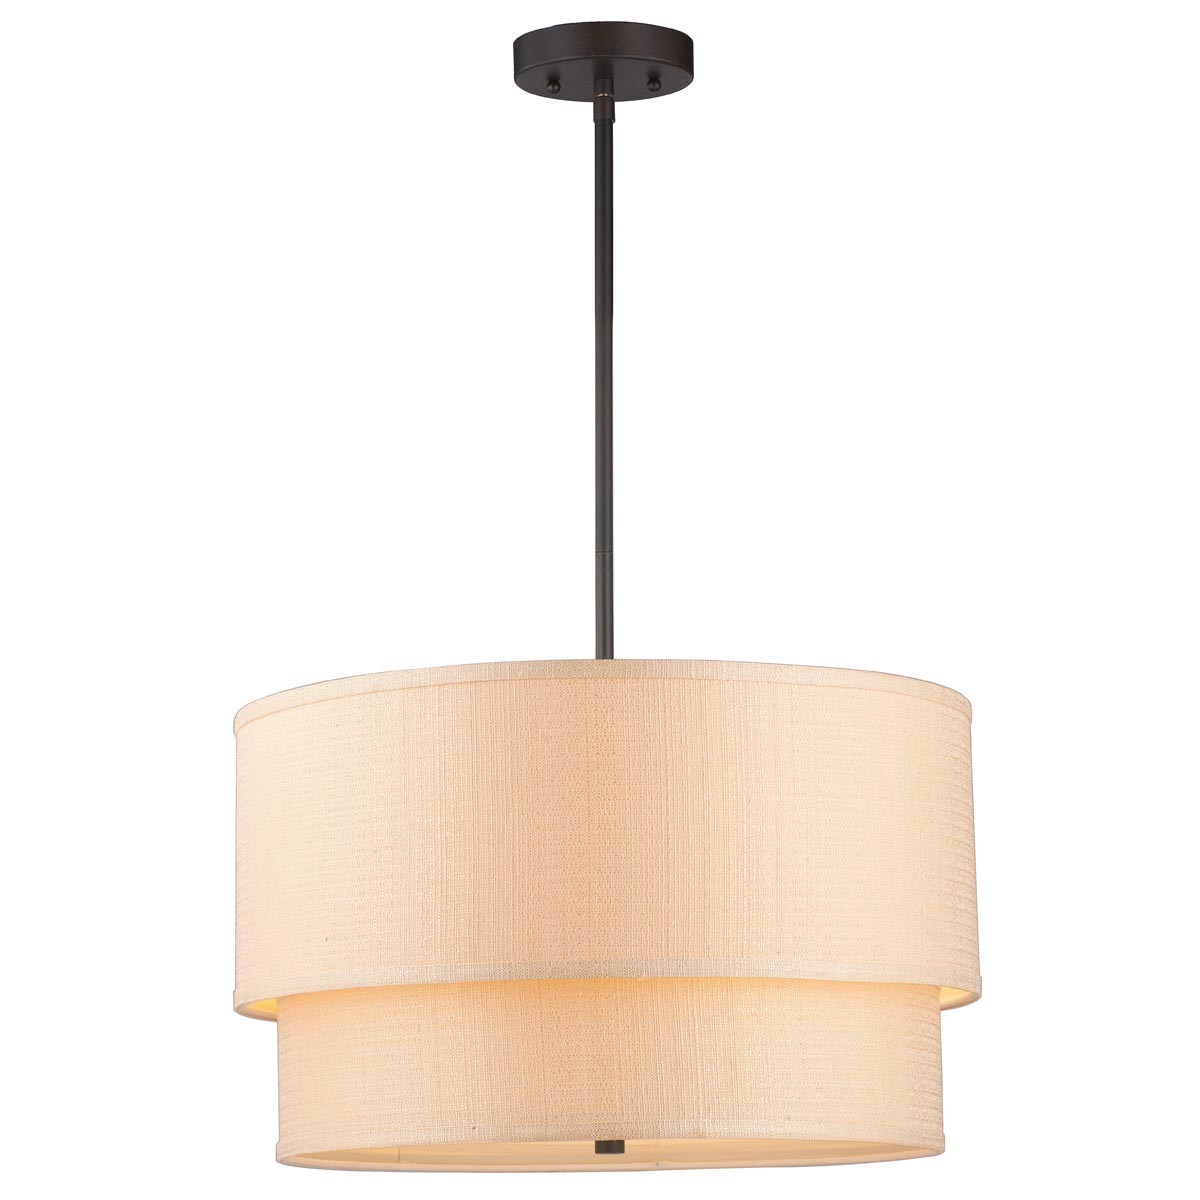 Double Drum Light Fixture